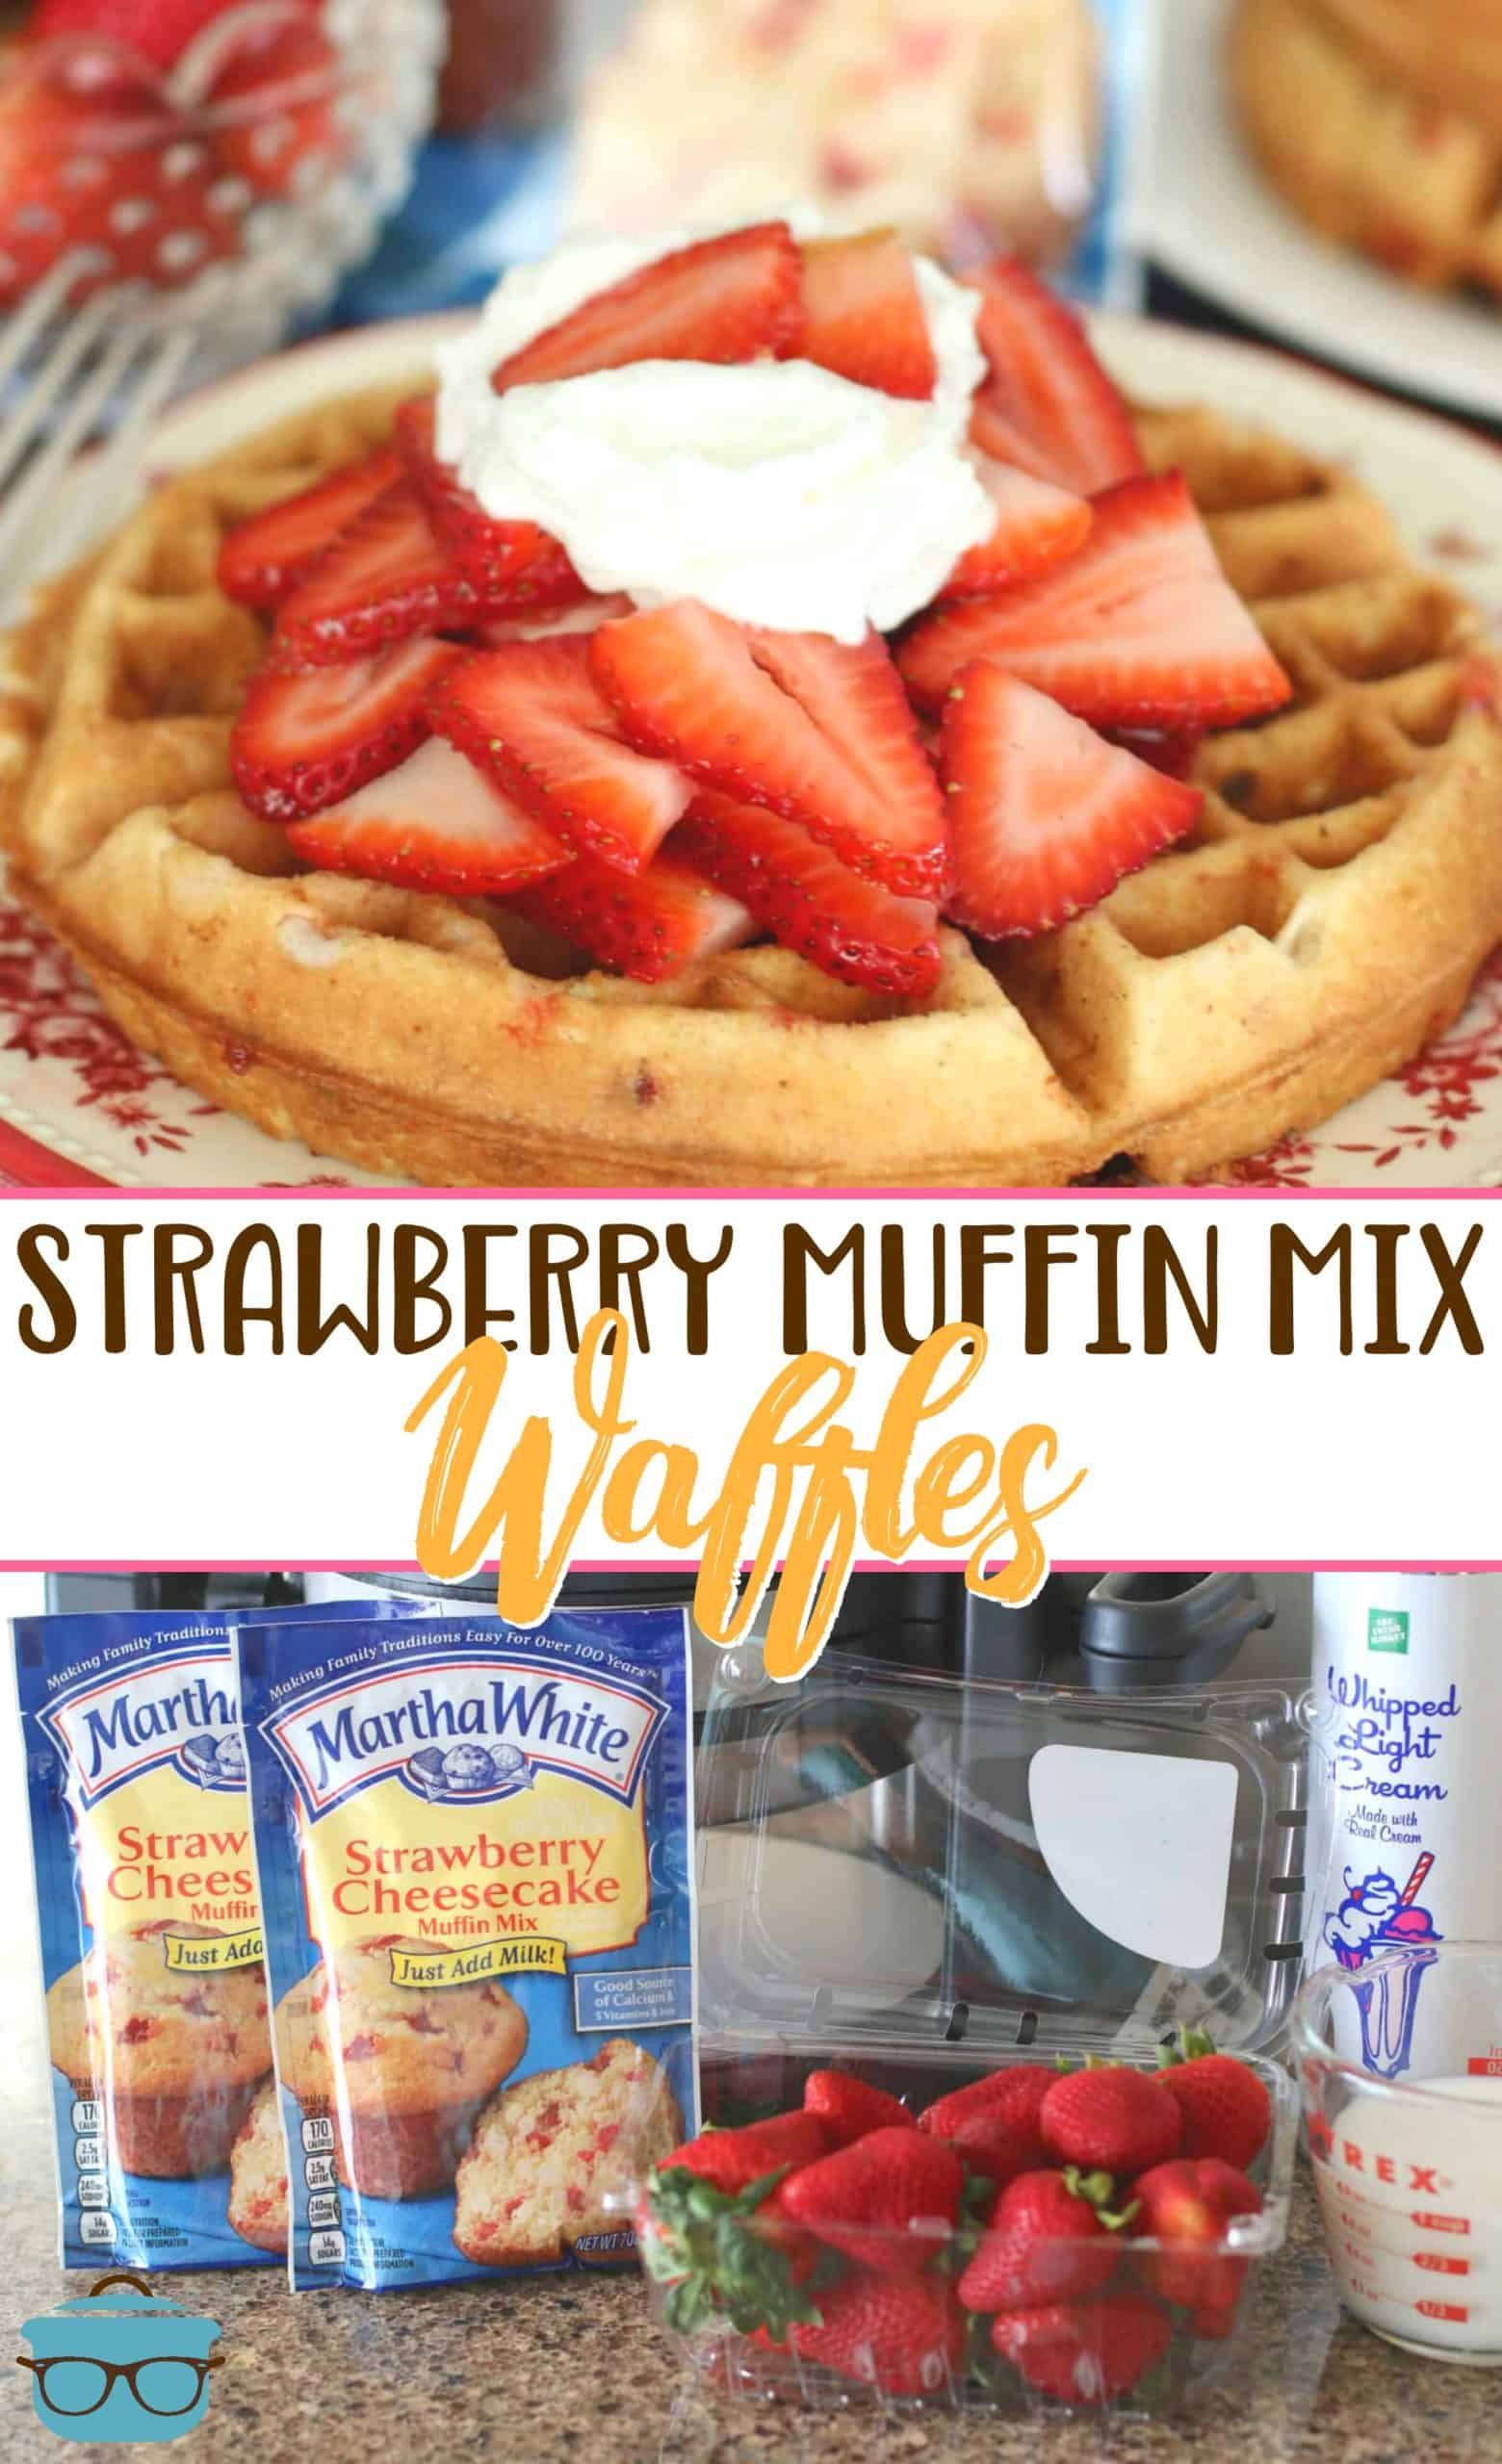 These Strawberry Muffin Mix Waffles are delicious topped with fresh strawberries and whipped cream! A fun twist on strawberry shortcake for breakfast or dessert!